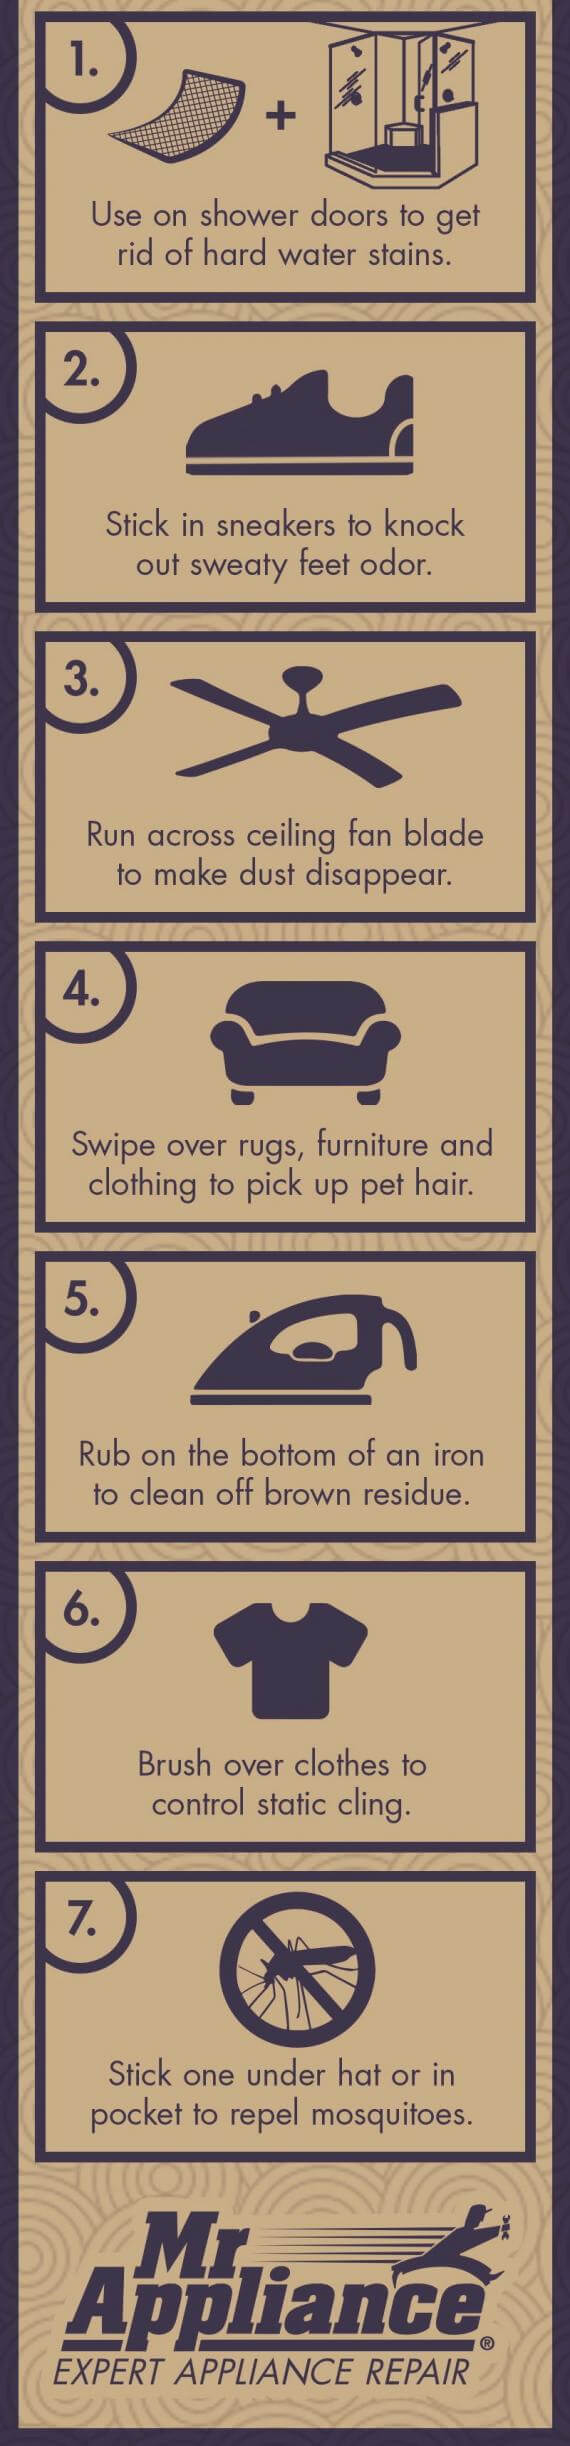 Other Uses for Dryer Sheets Infographic